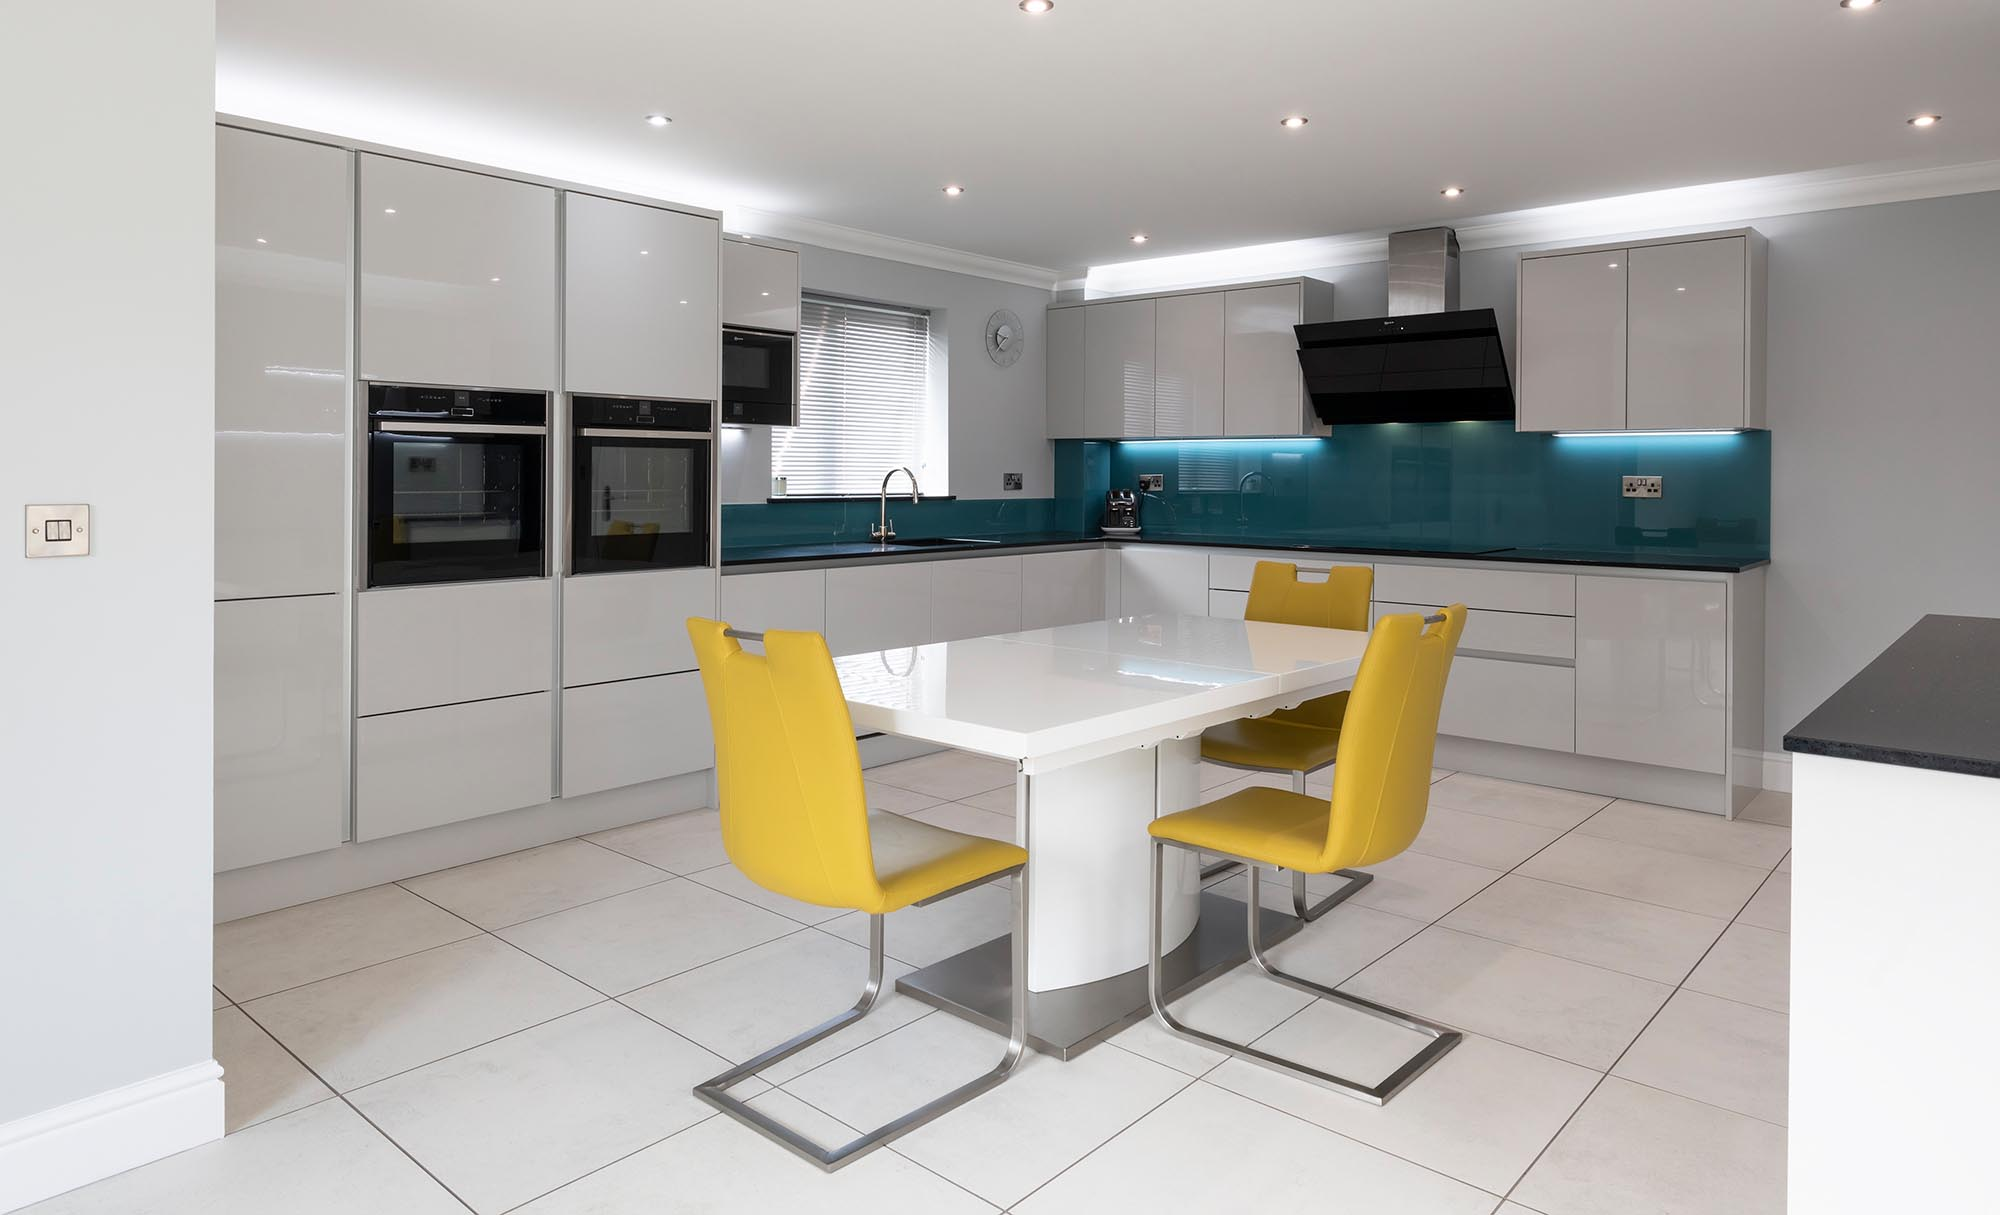 Portishead Kitchens Zola Gloss Light Grey Kitchen for a home in Portishead